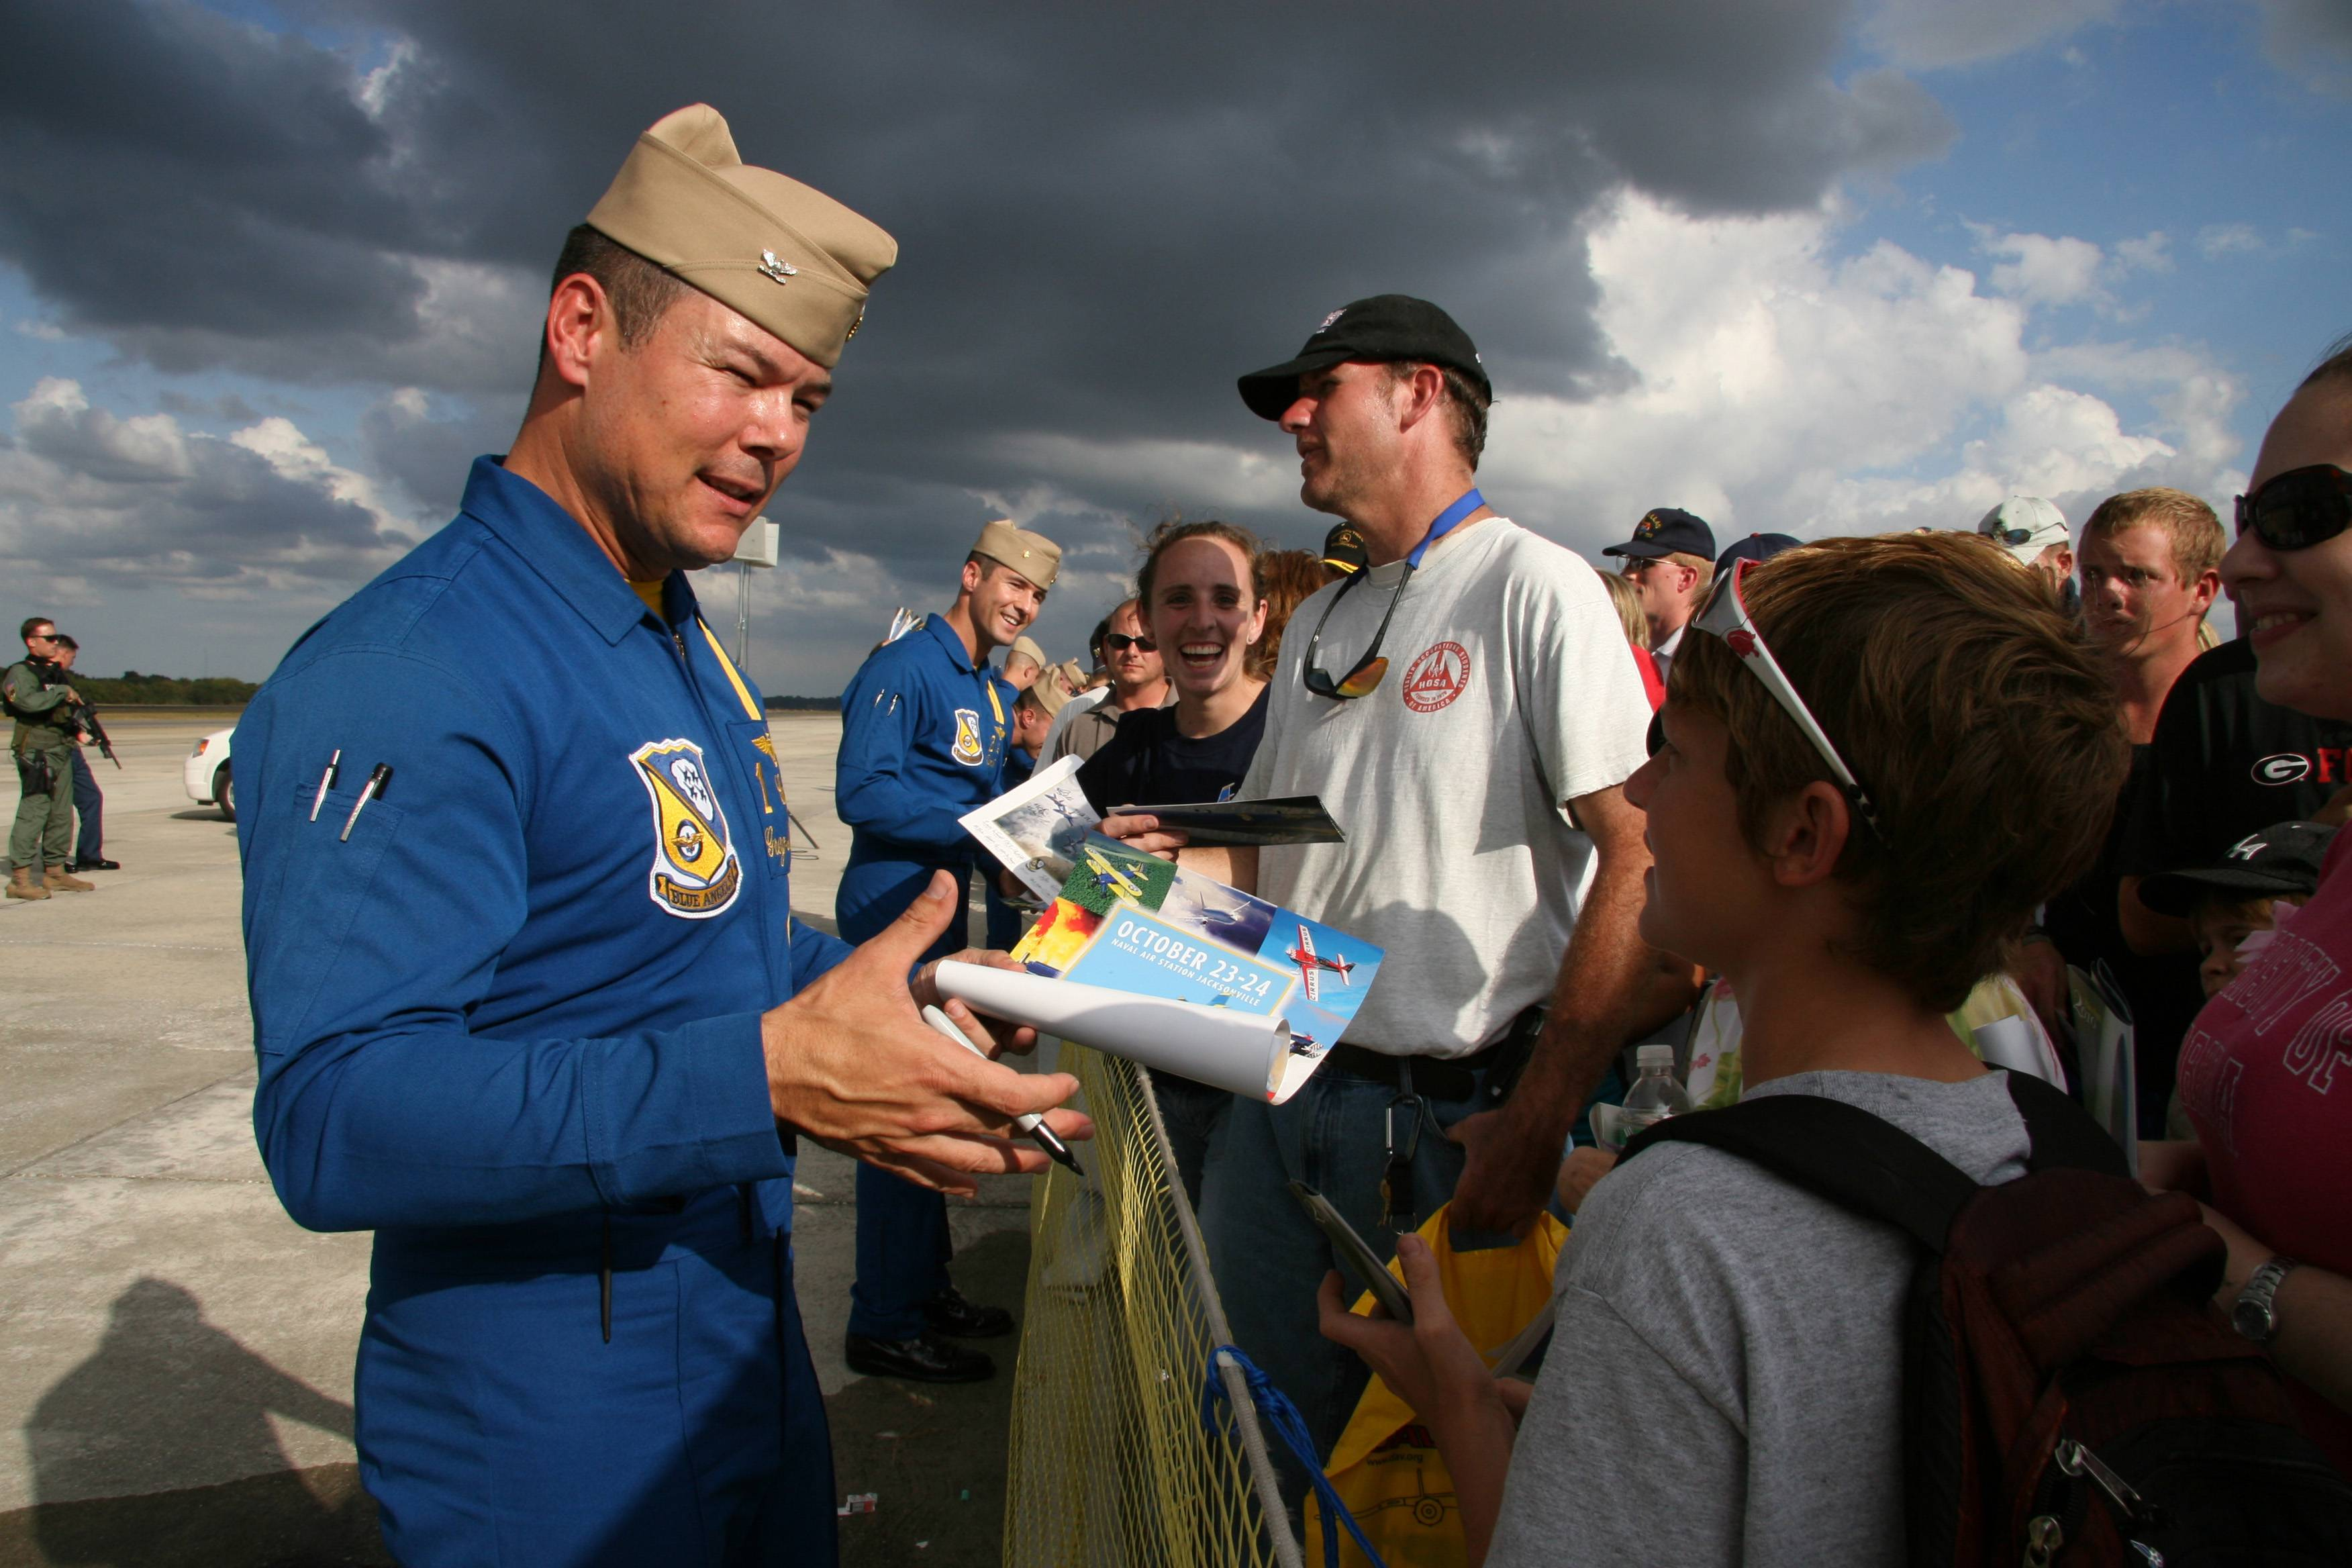 U.S. Navy, Capt. Greg McWherter has been relieved of duty over misconduct while he was commanding officer of the Blue Angels over allegations that he allowed and in some cases encouraged sexually explicit humor, lewd speech and inappropriate comments among the famed precision flying team.